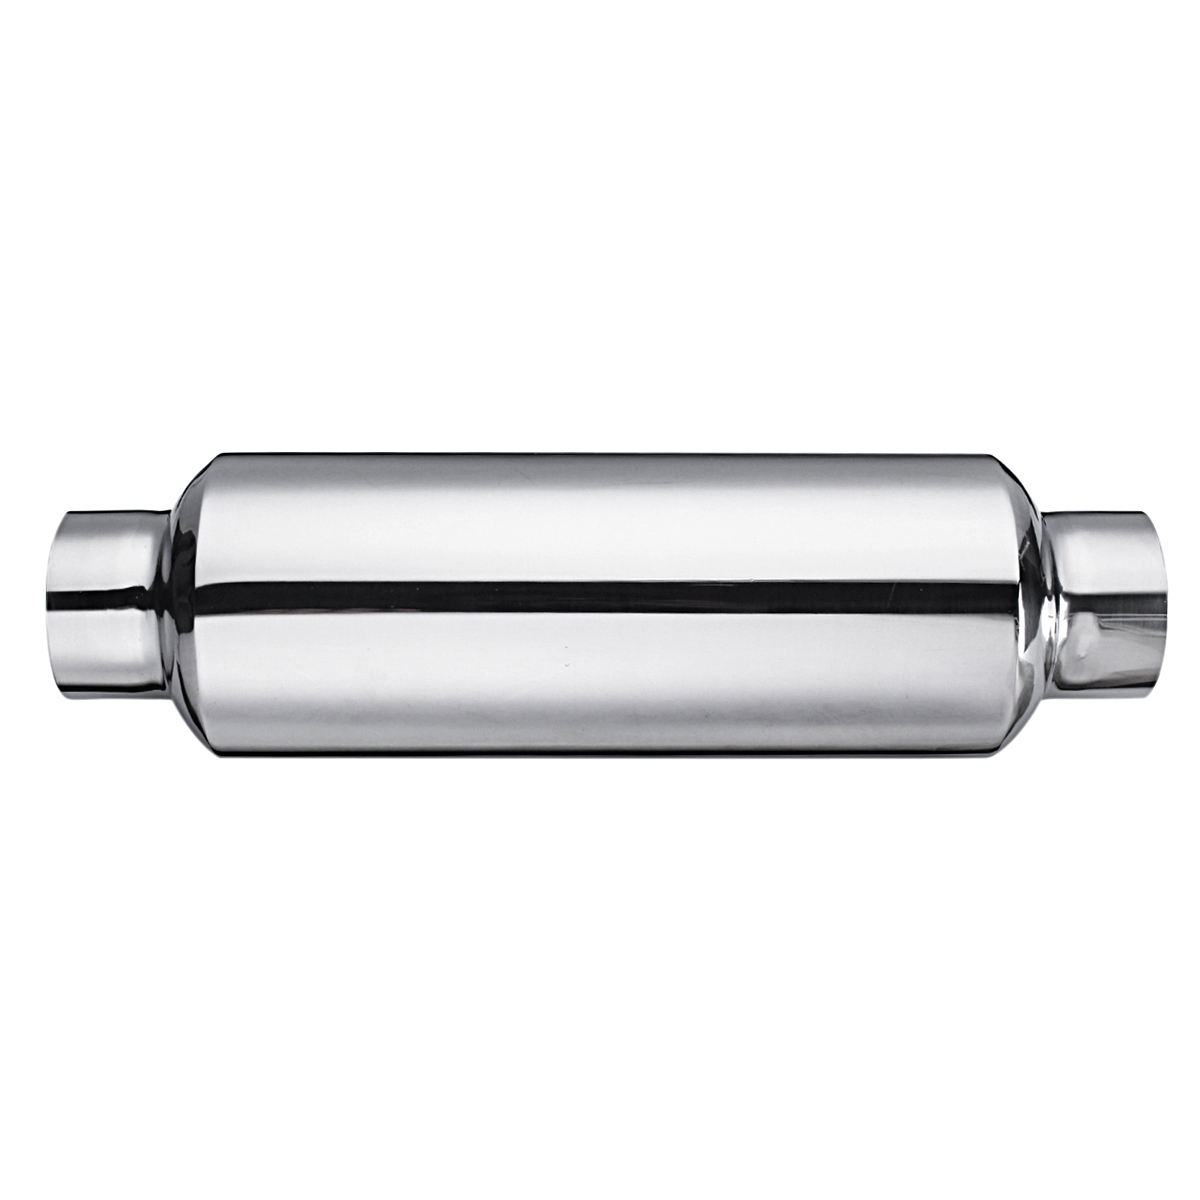 """Hot Sale Universal Stainless Steel Car Resonator Exhaust Muffler 2.5"""" inlet To 2.5"""" outlet Exhaust Tip Pipe Tube"""